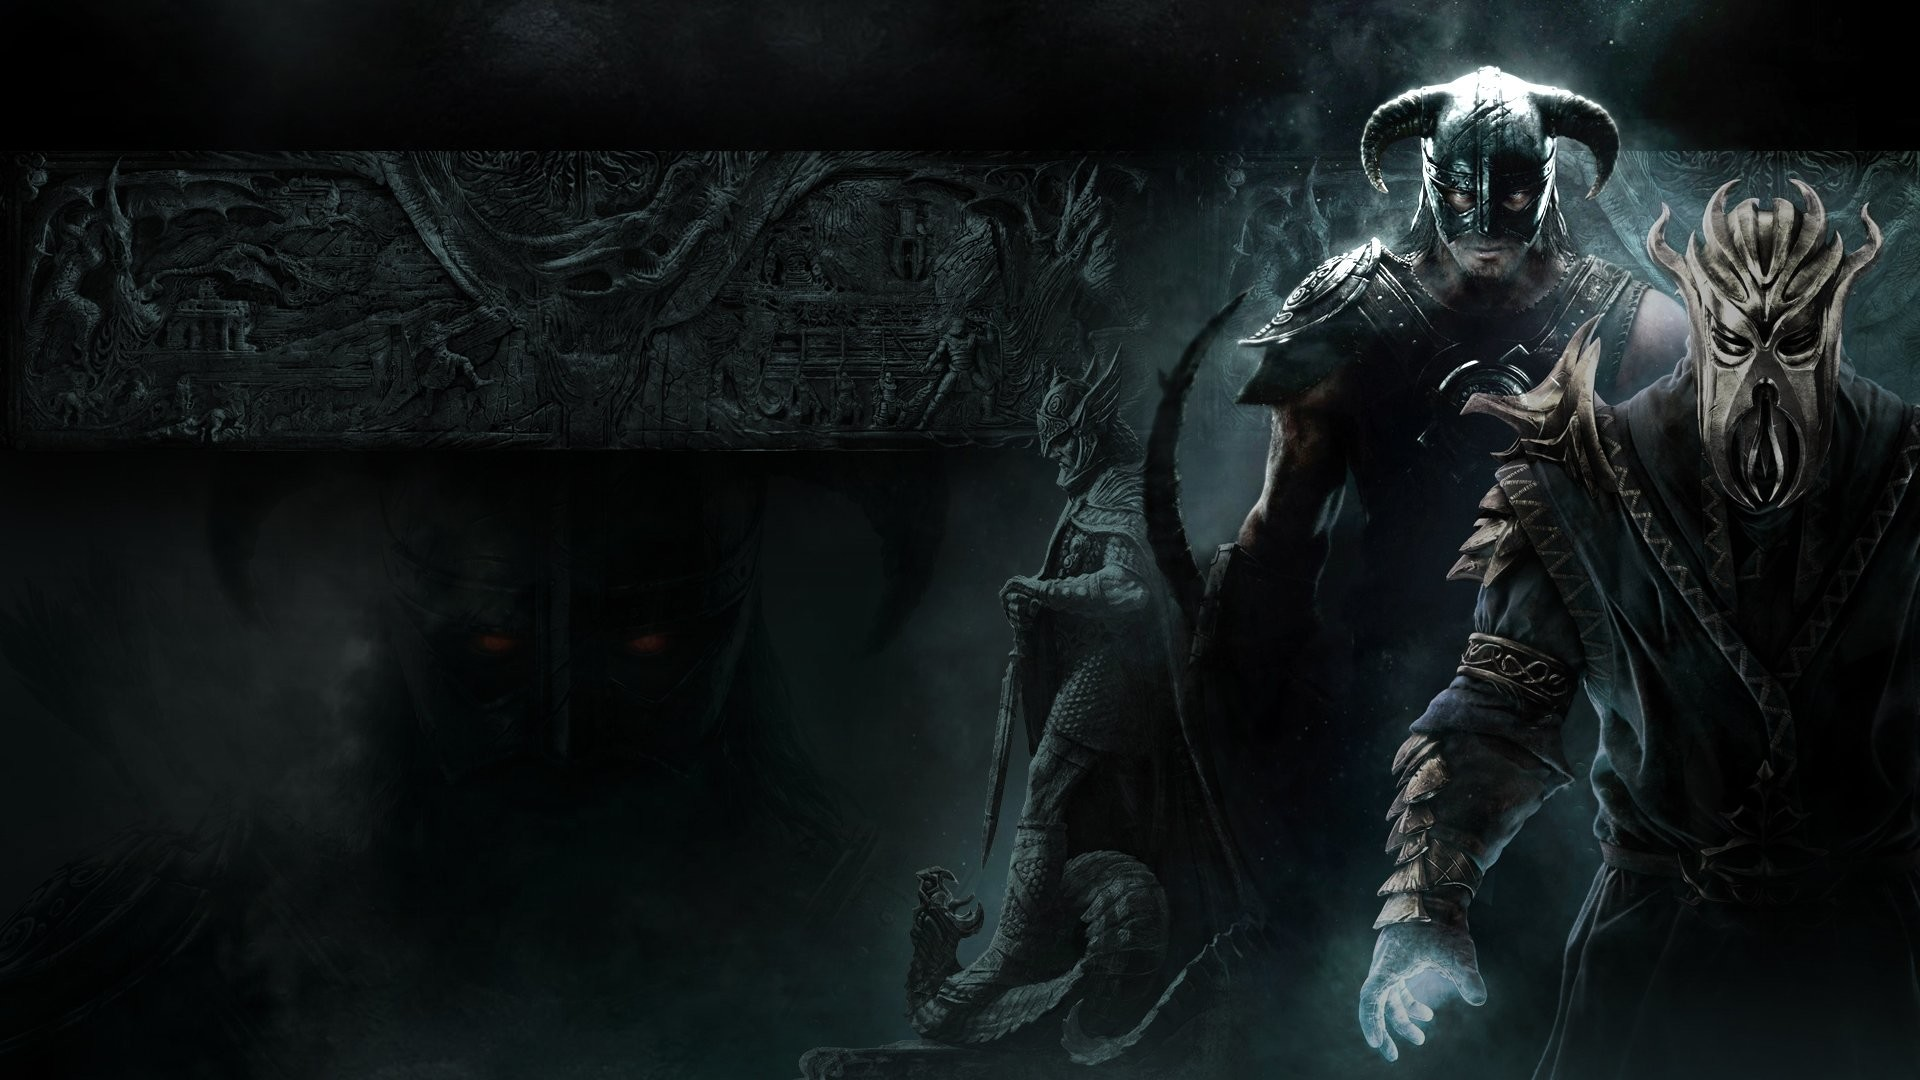 1920x1080 ... Miraak [Wallpaper] by bluesonic1 on DeviantArt ...